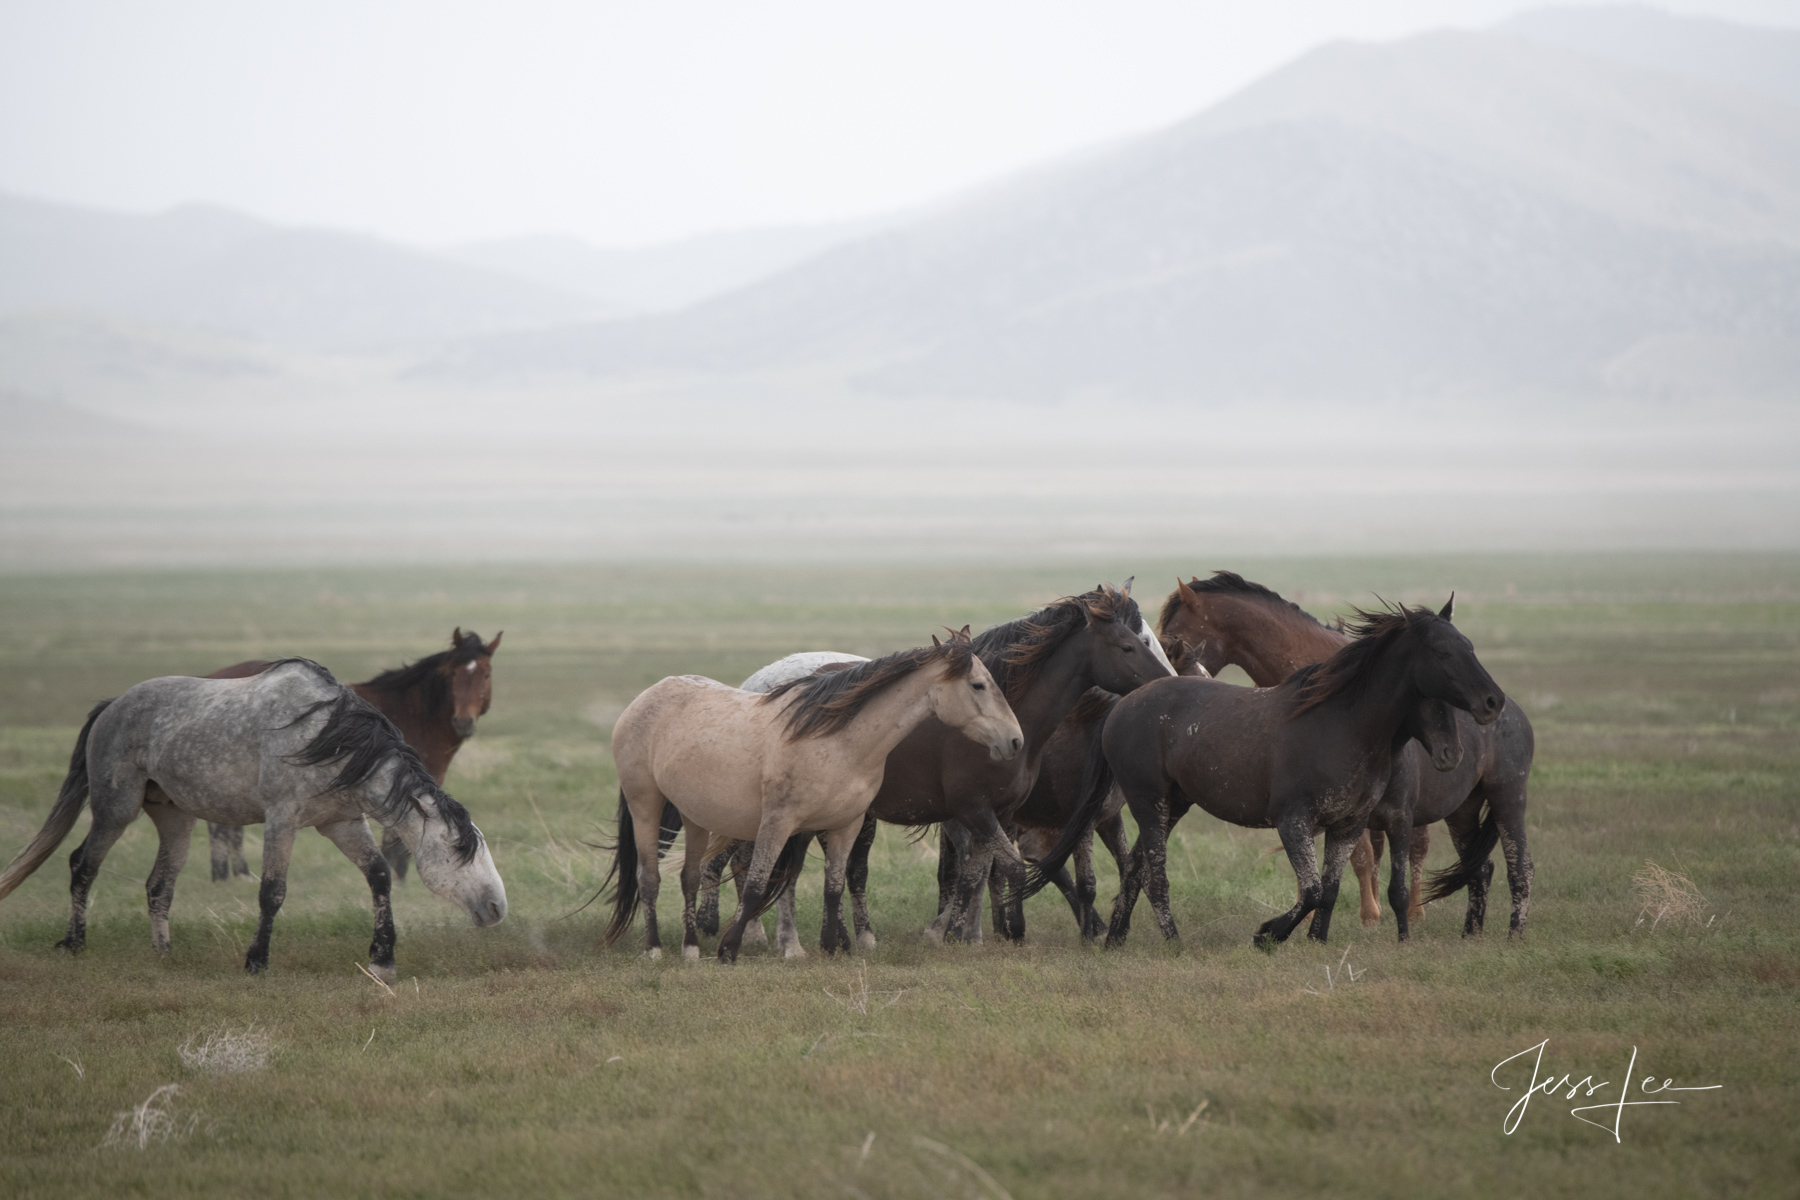 Fine Art Limited Edition Photography of Wild Horses. Utah Wild Horses or Mustangs. This is part of the luxurious collection of...